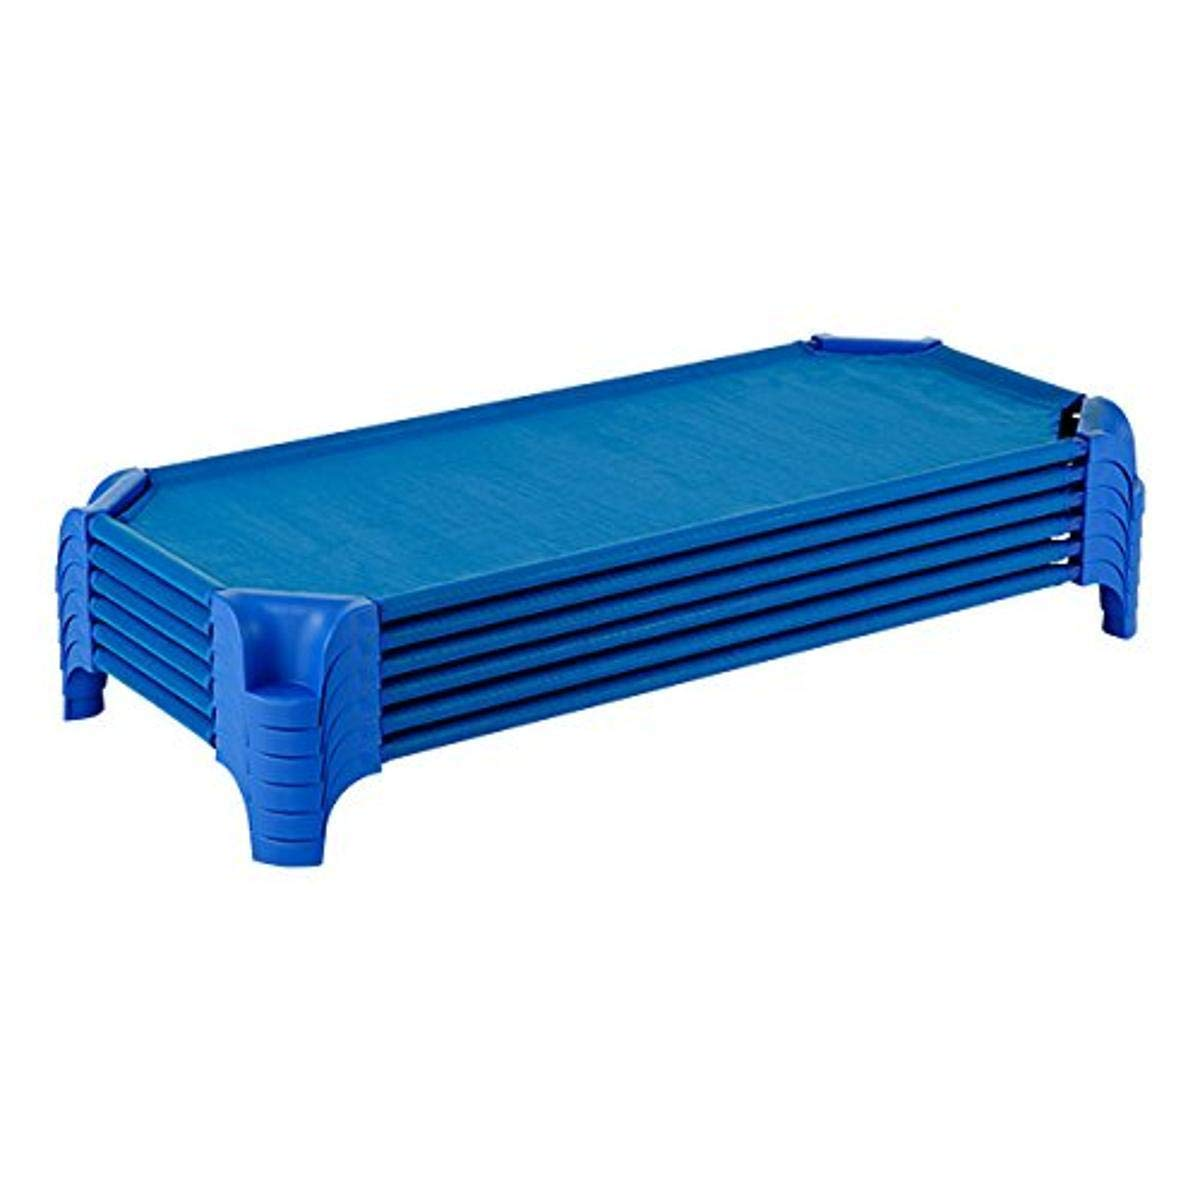 Sprogs SPG-16137-BL-SO Heavy-Duty Stackable Daycare Cot Rest Mat Standard w Easy Lift Corners, 5 Height, 23 Width, 52 Length, Blue Pack of 6